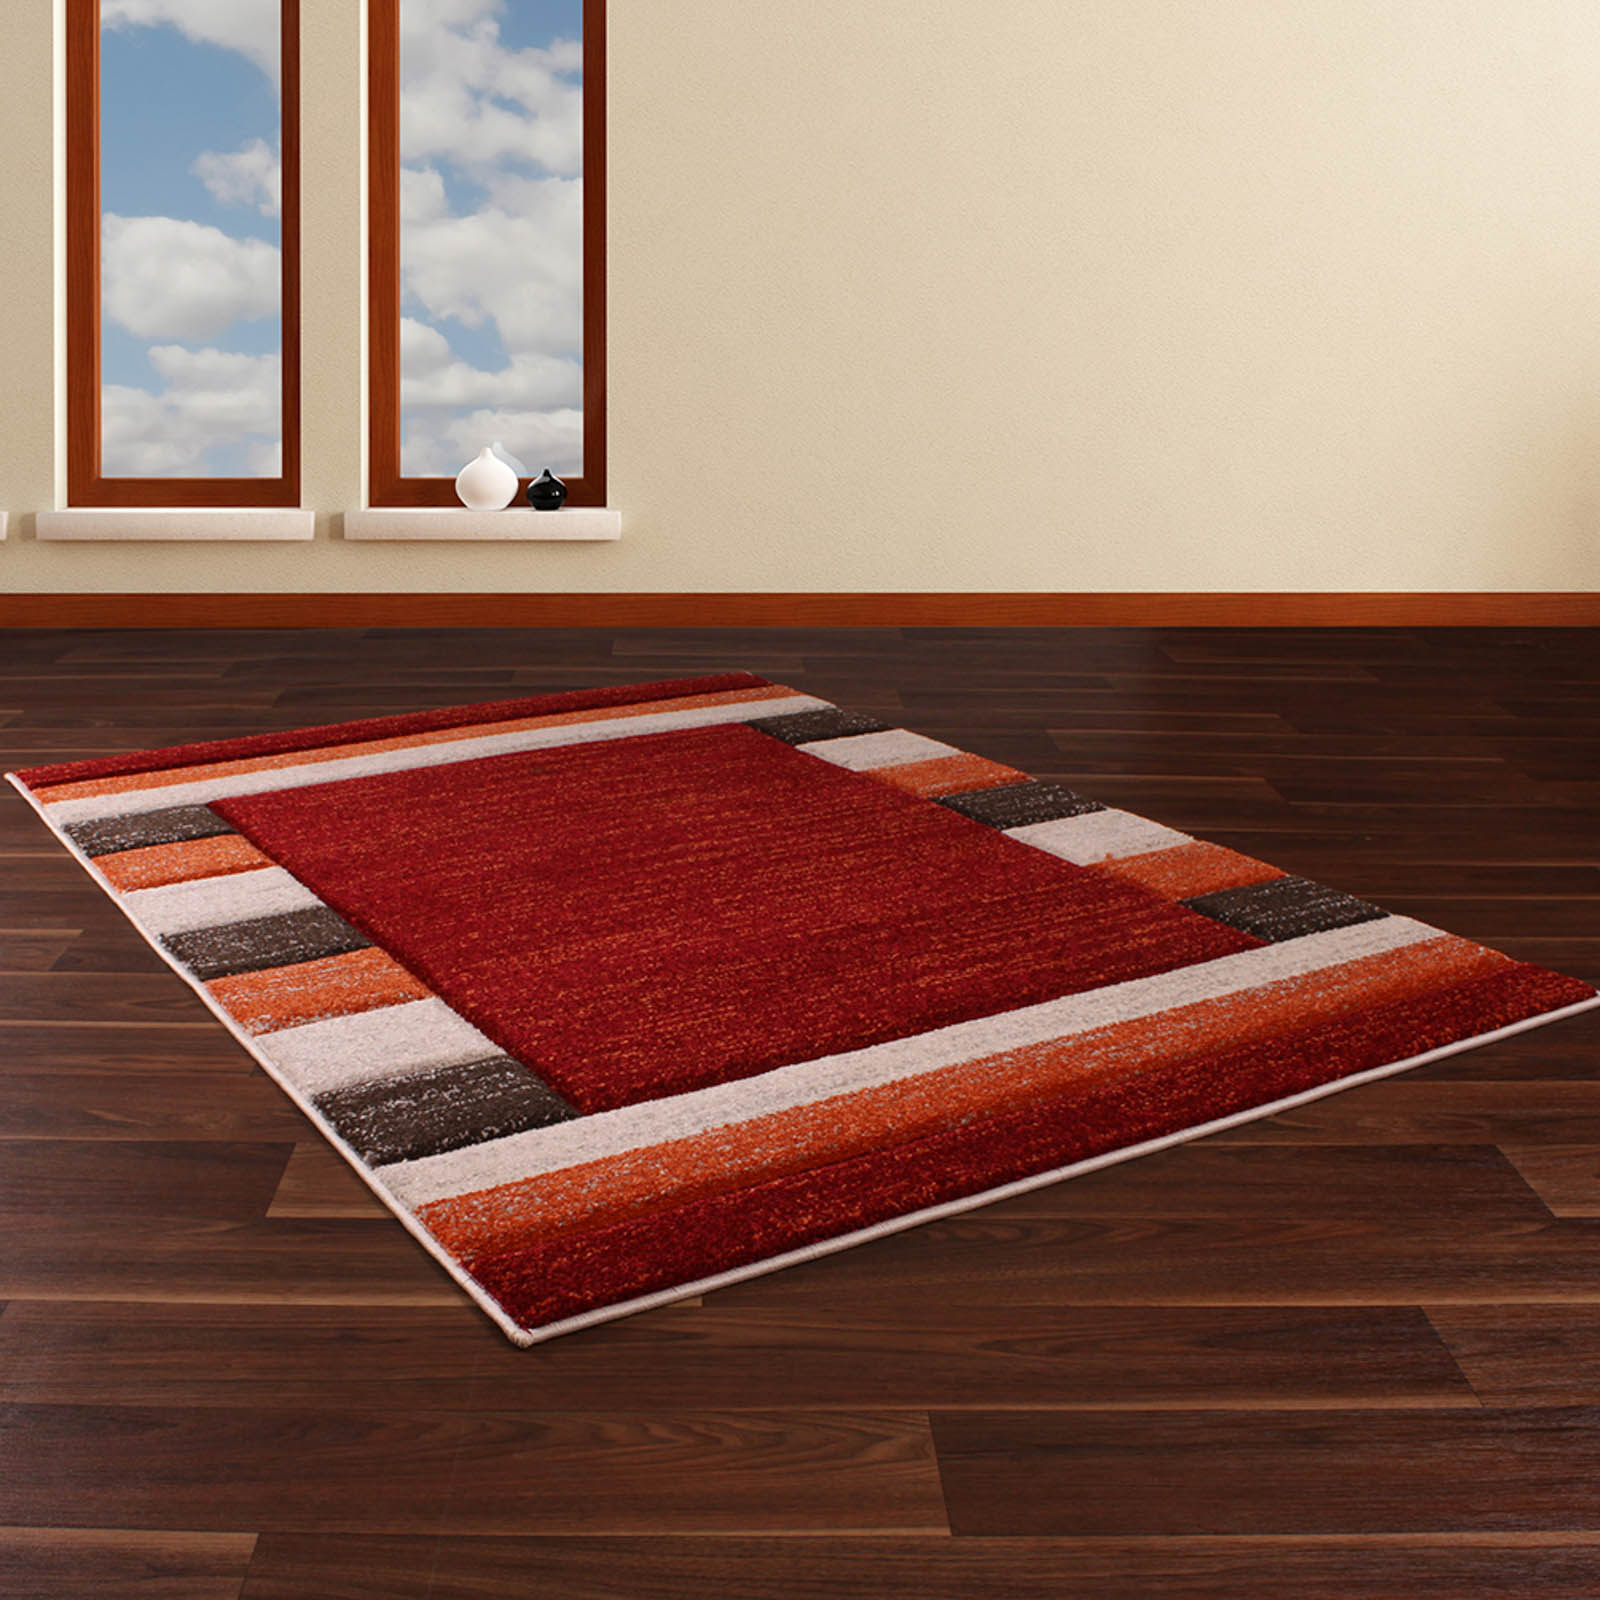 Bali Rugs 871 in Red